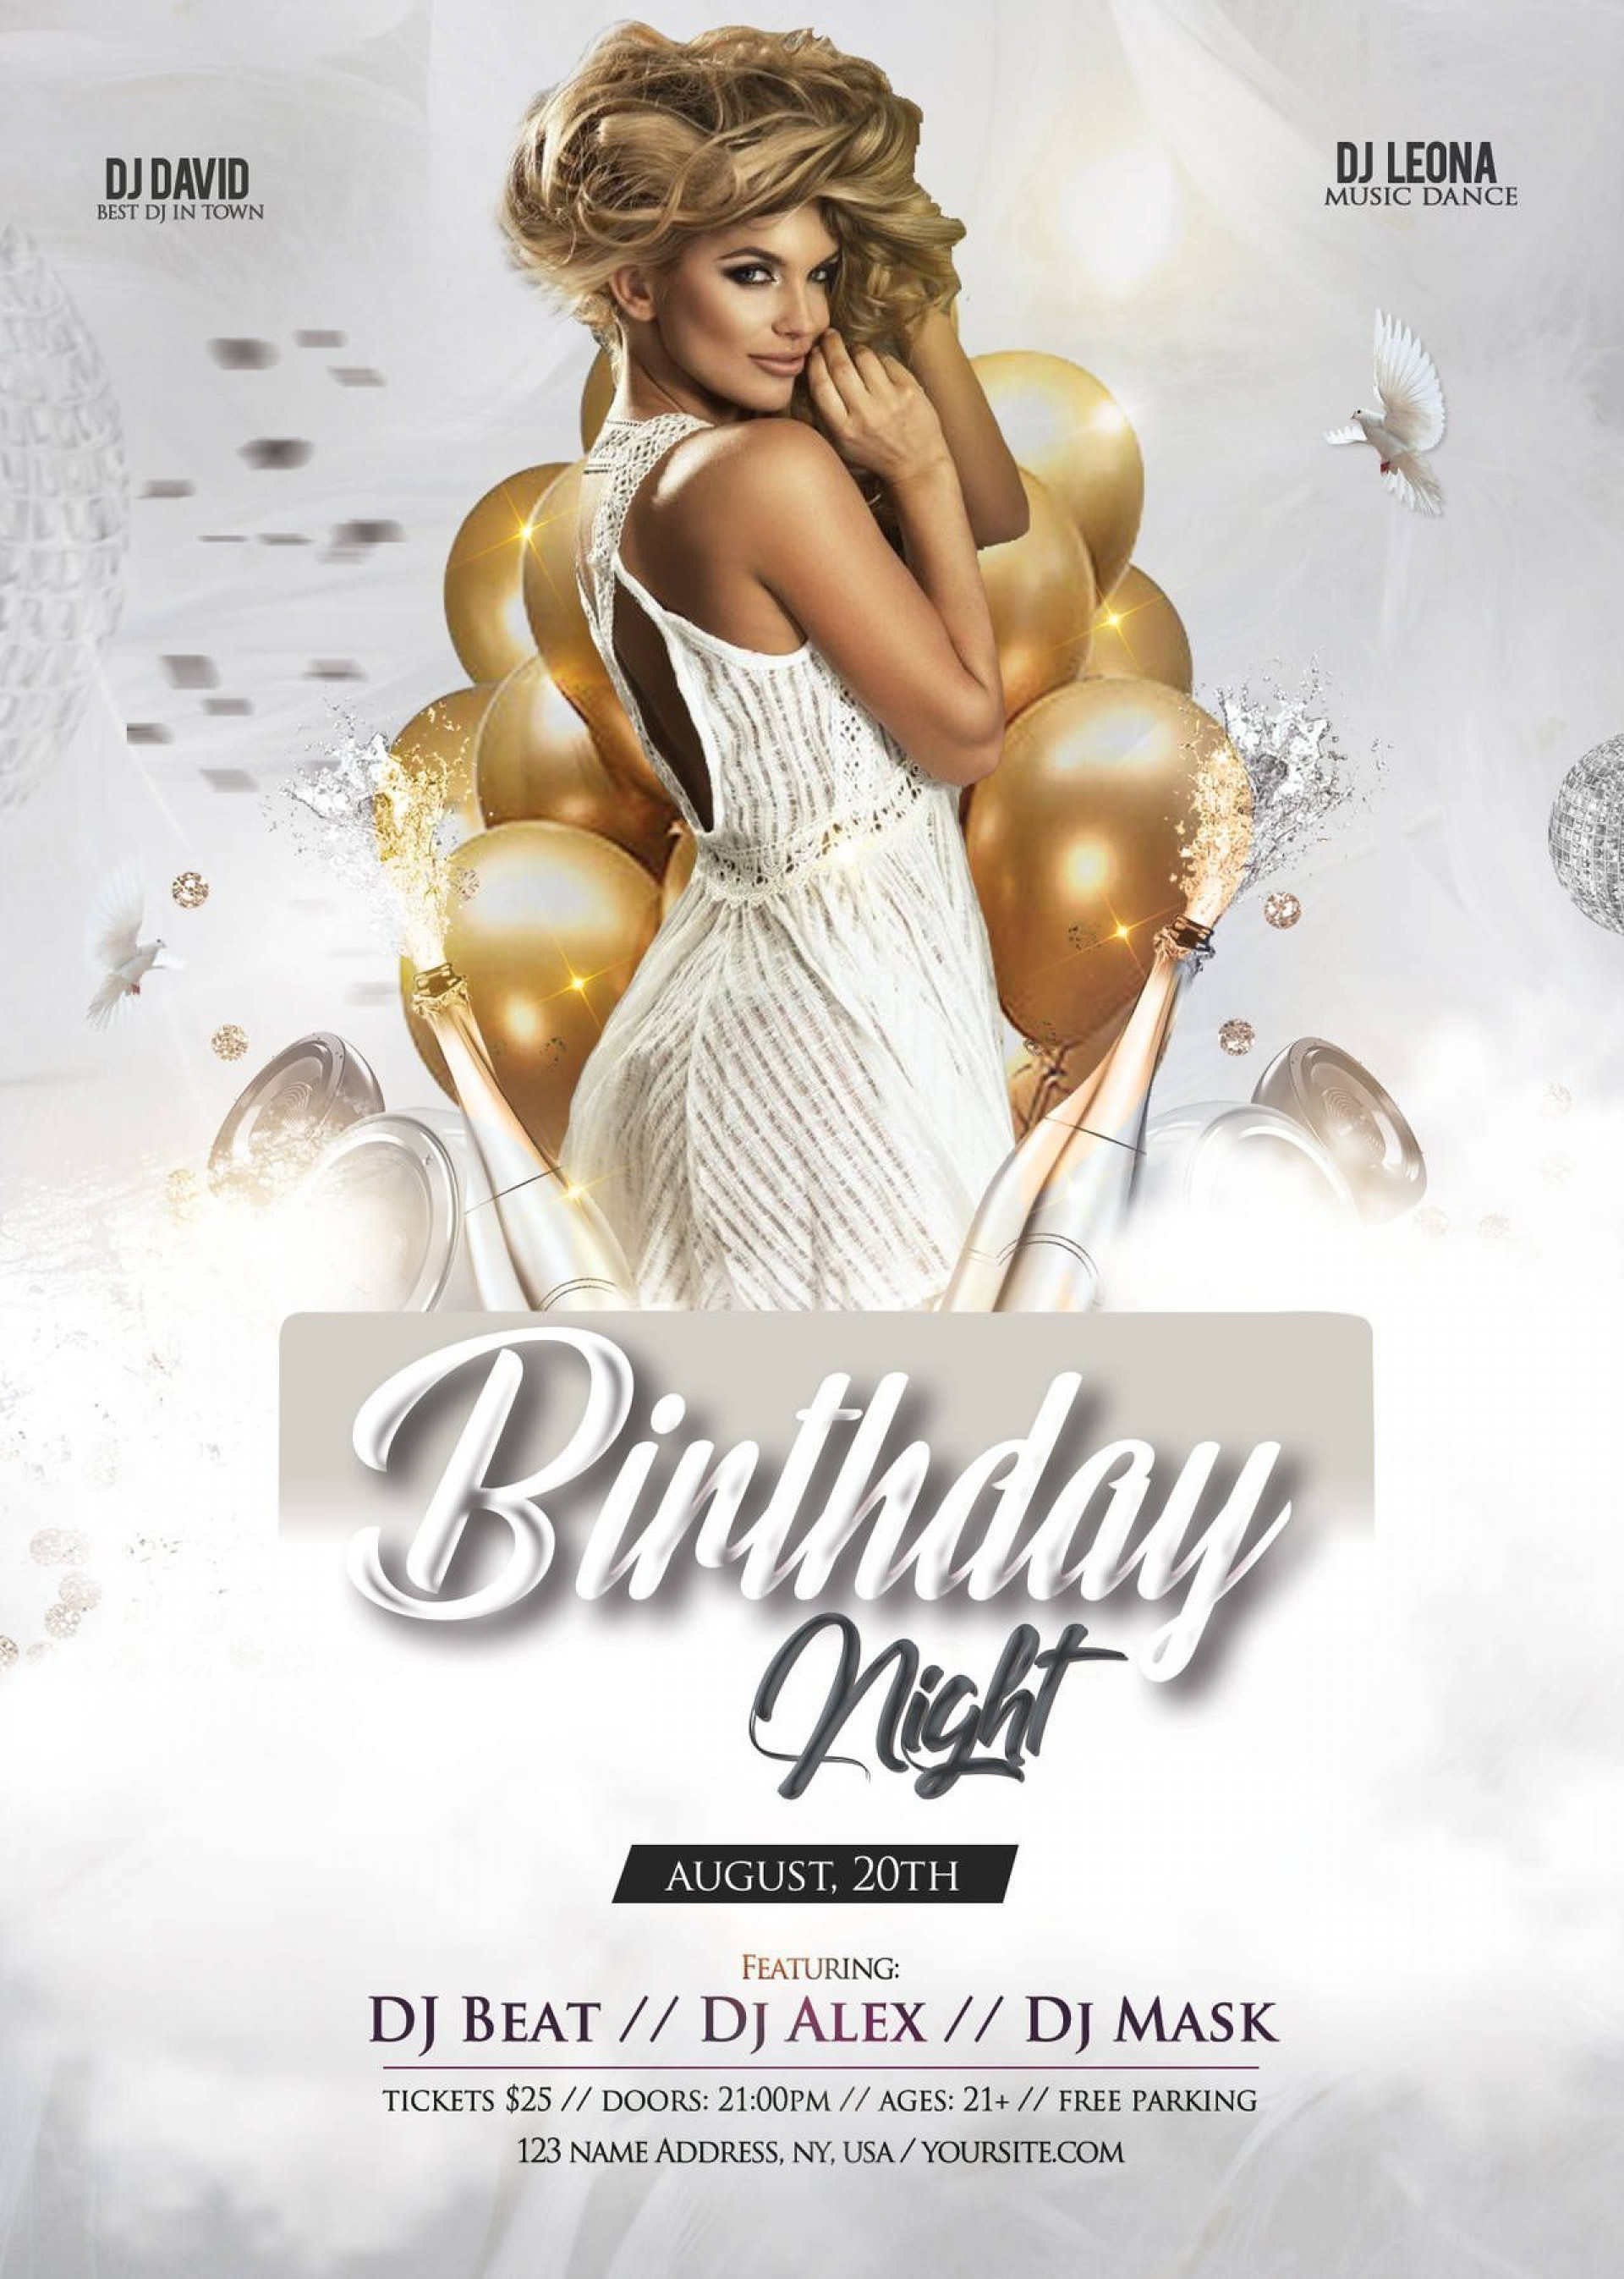 003 Awesome Free Birthday Flyer Template Psd Example  Foam Party - Neon Glow Download Pool1920